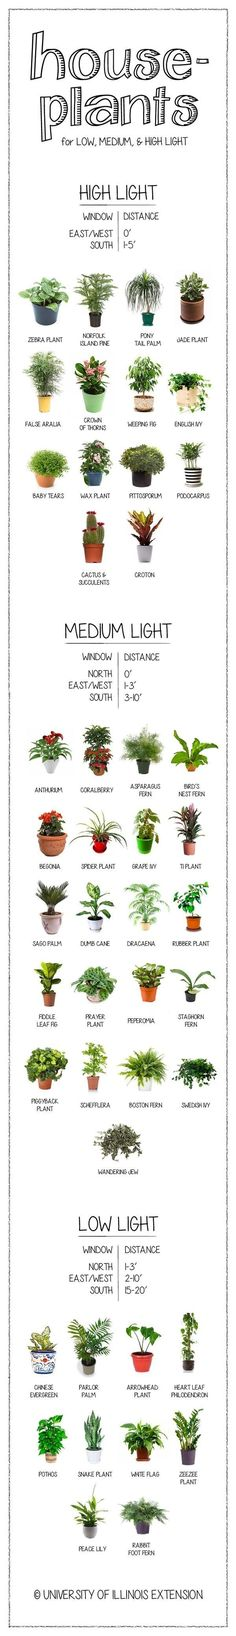 Diagrams That Make Gardening So Much Easier So useful right now: a visual guide to houseplants, according to their need for light.So useful right now: a visual guide to houseplants, according to their need for light.